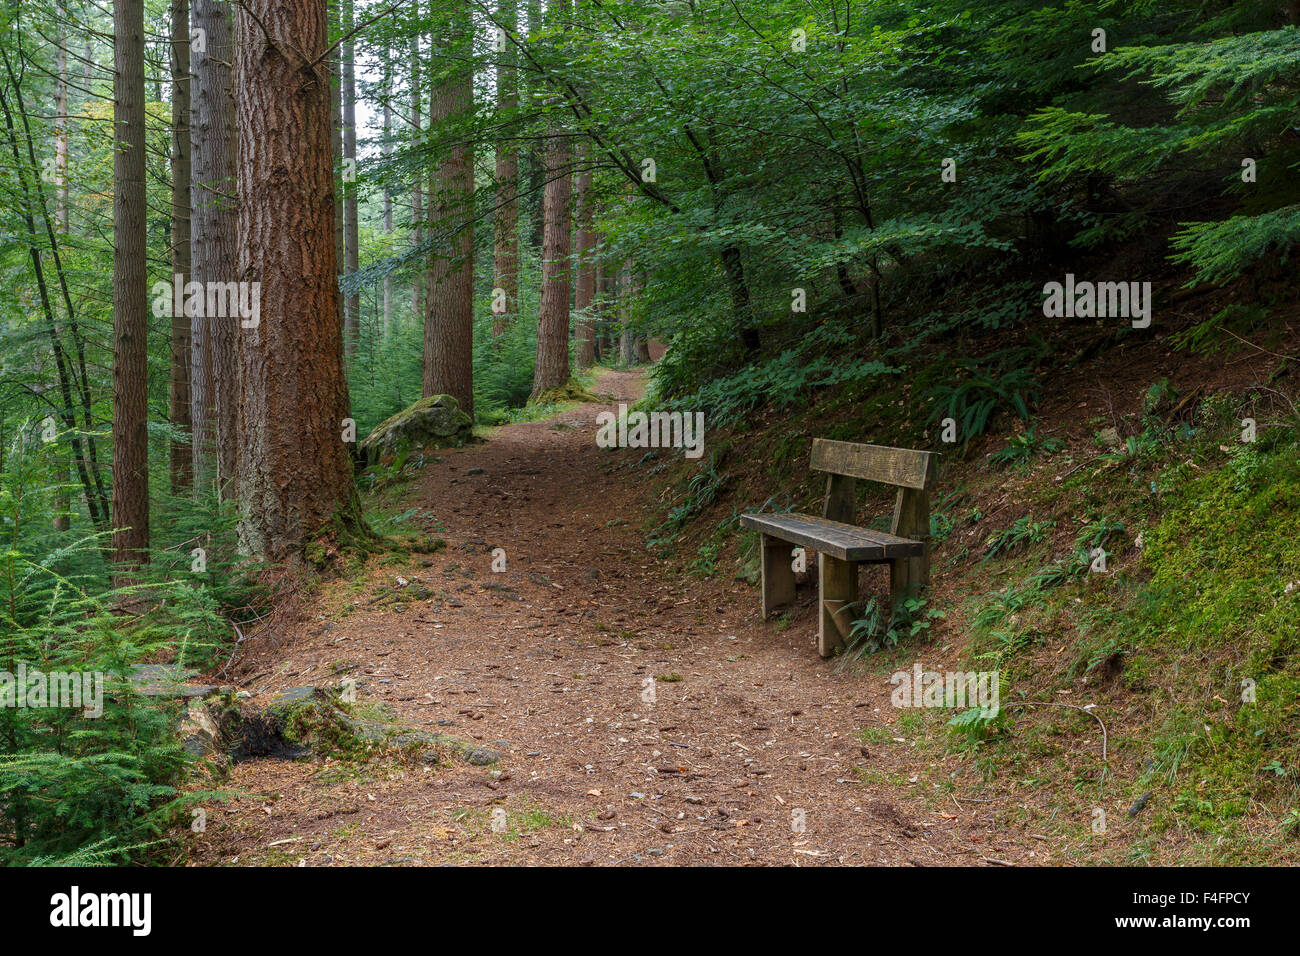 Wooden bench and forest track, Snowdonia National Park, North Wales - Stock Image